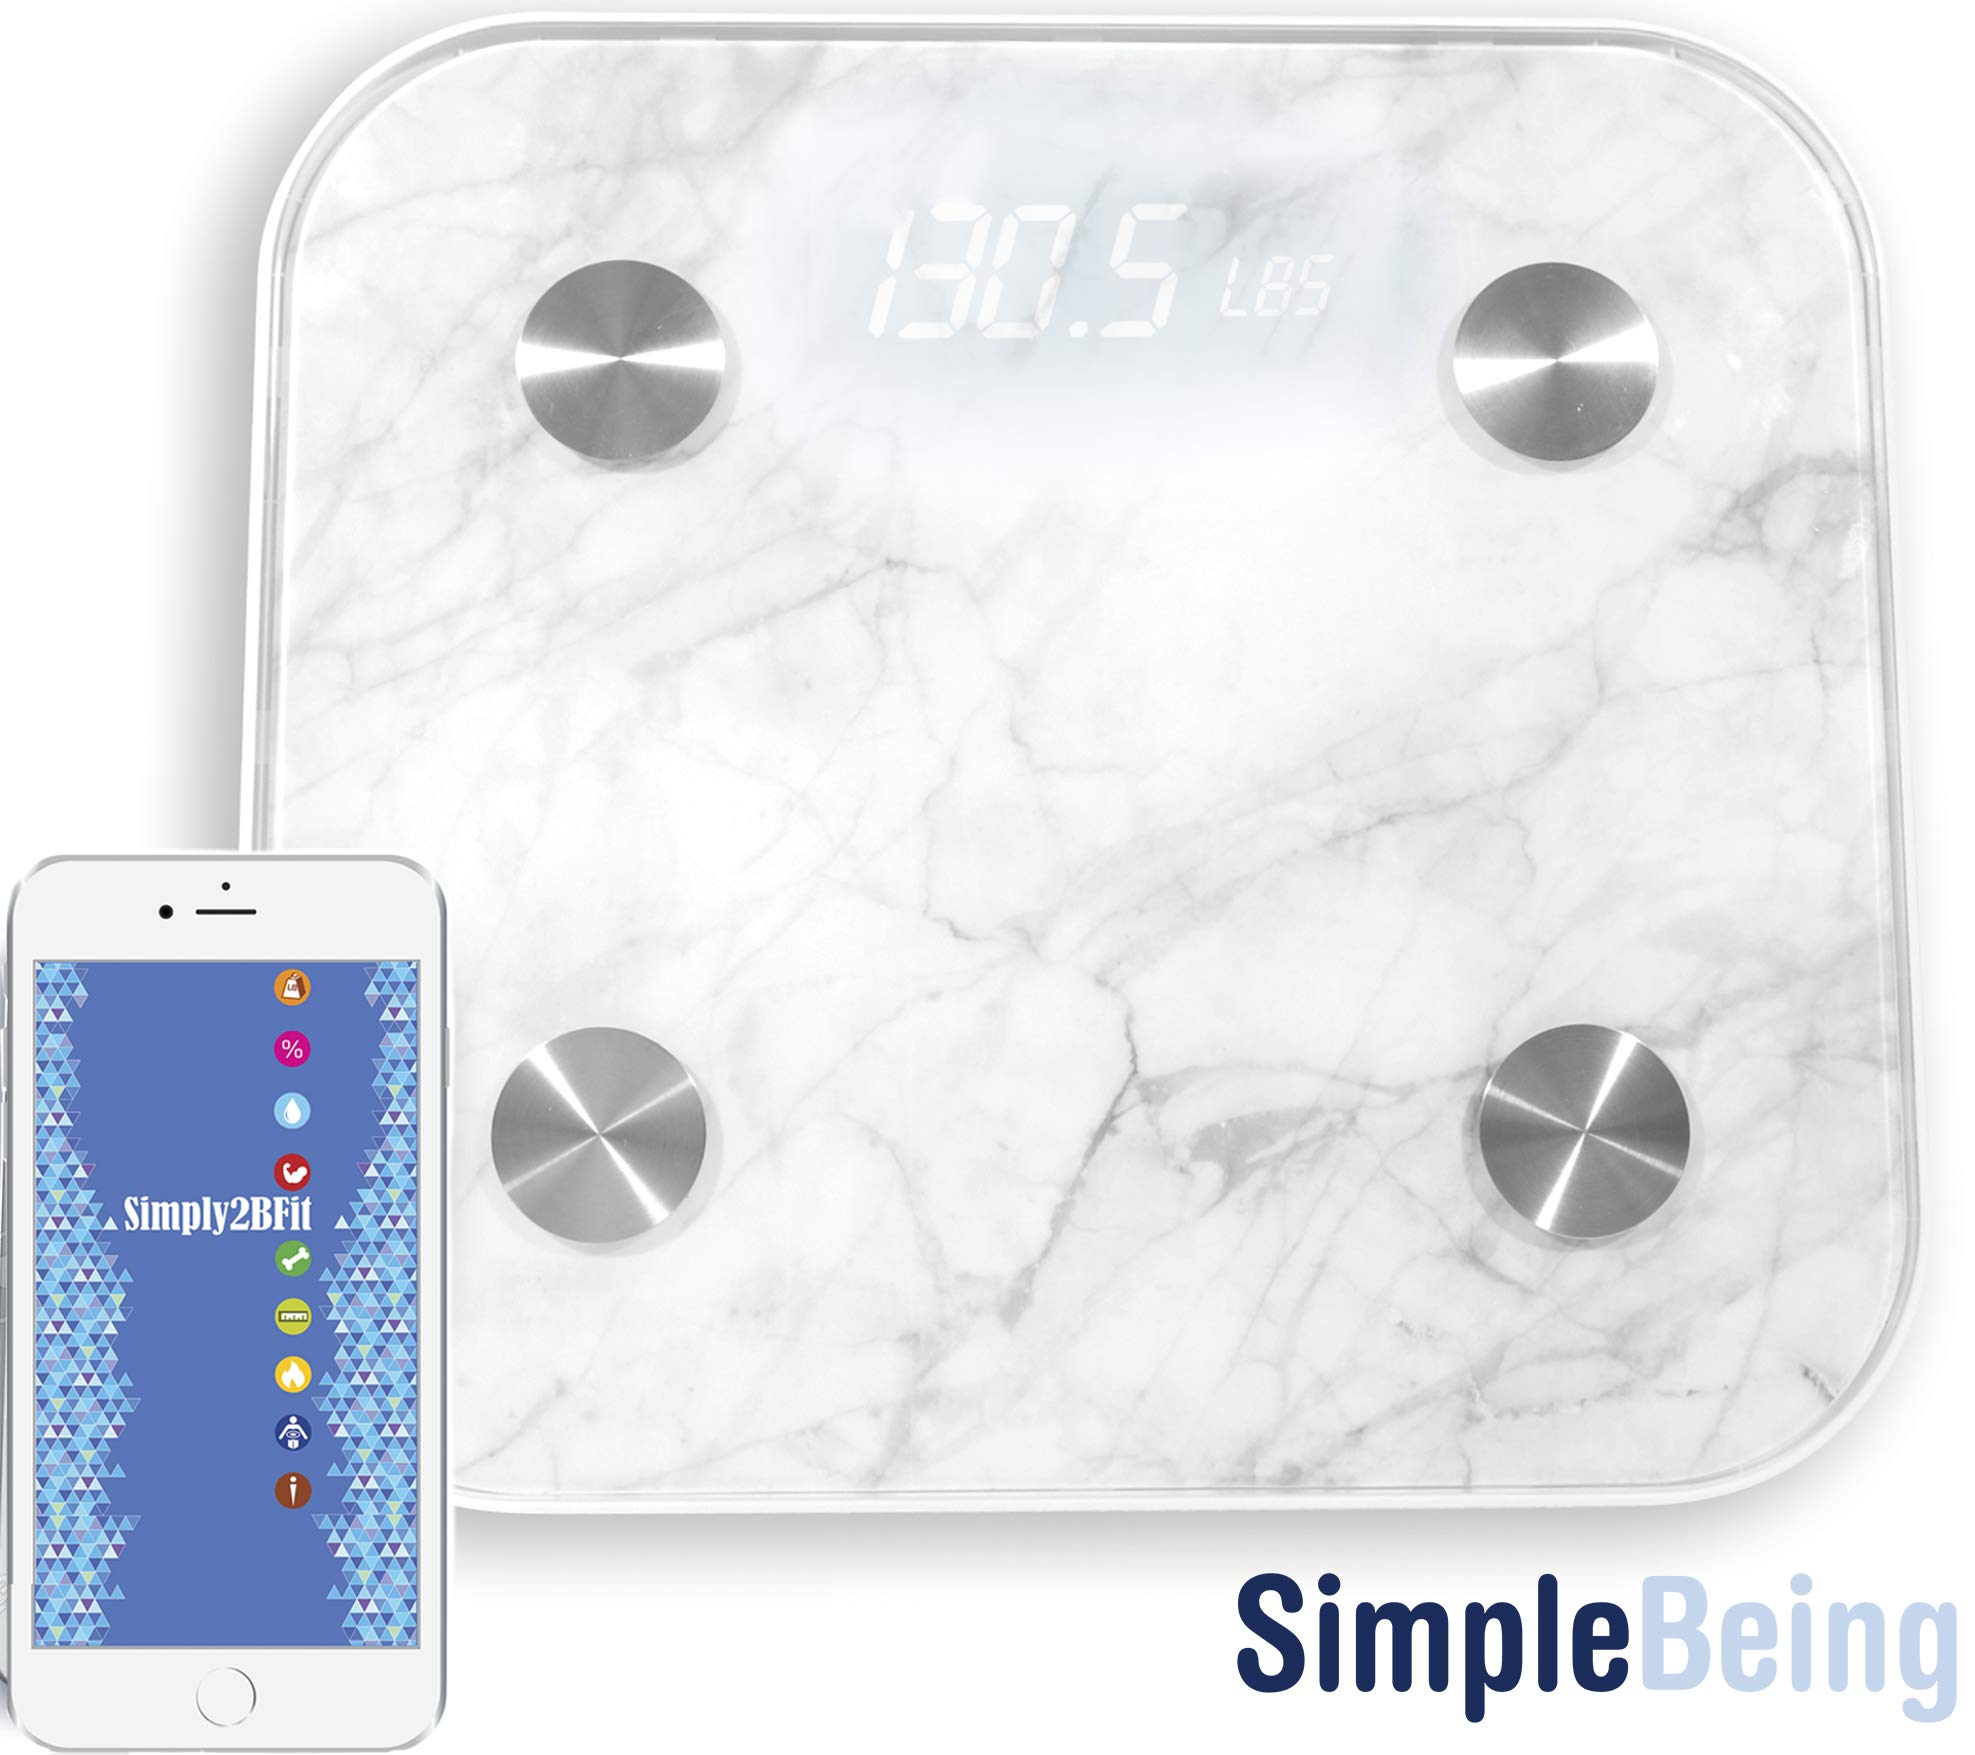 Simple Being Bluetooth Body Fat Scale, Smart Wireless Digital Bathroom Weighing Scale 400LB Capacity, Measures Weight, Water, Muscle Mass, BMI, Bone Mass, Visceral Fat, Calorie, with iOS, Android App by Simple Being